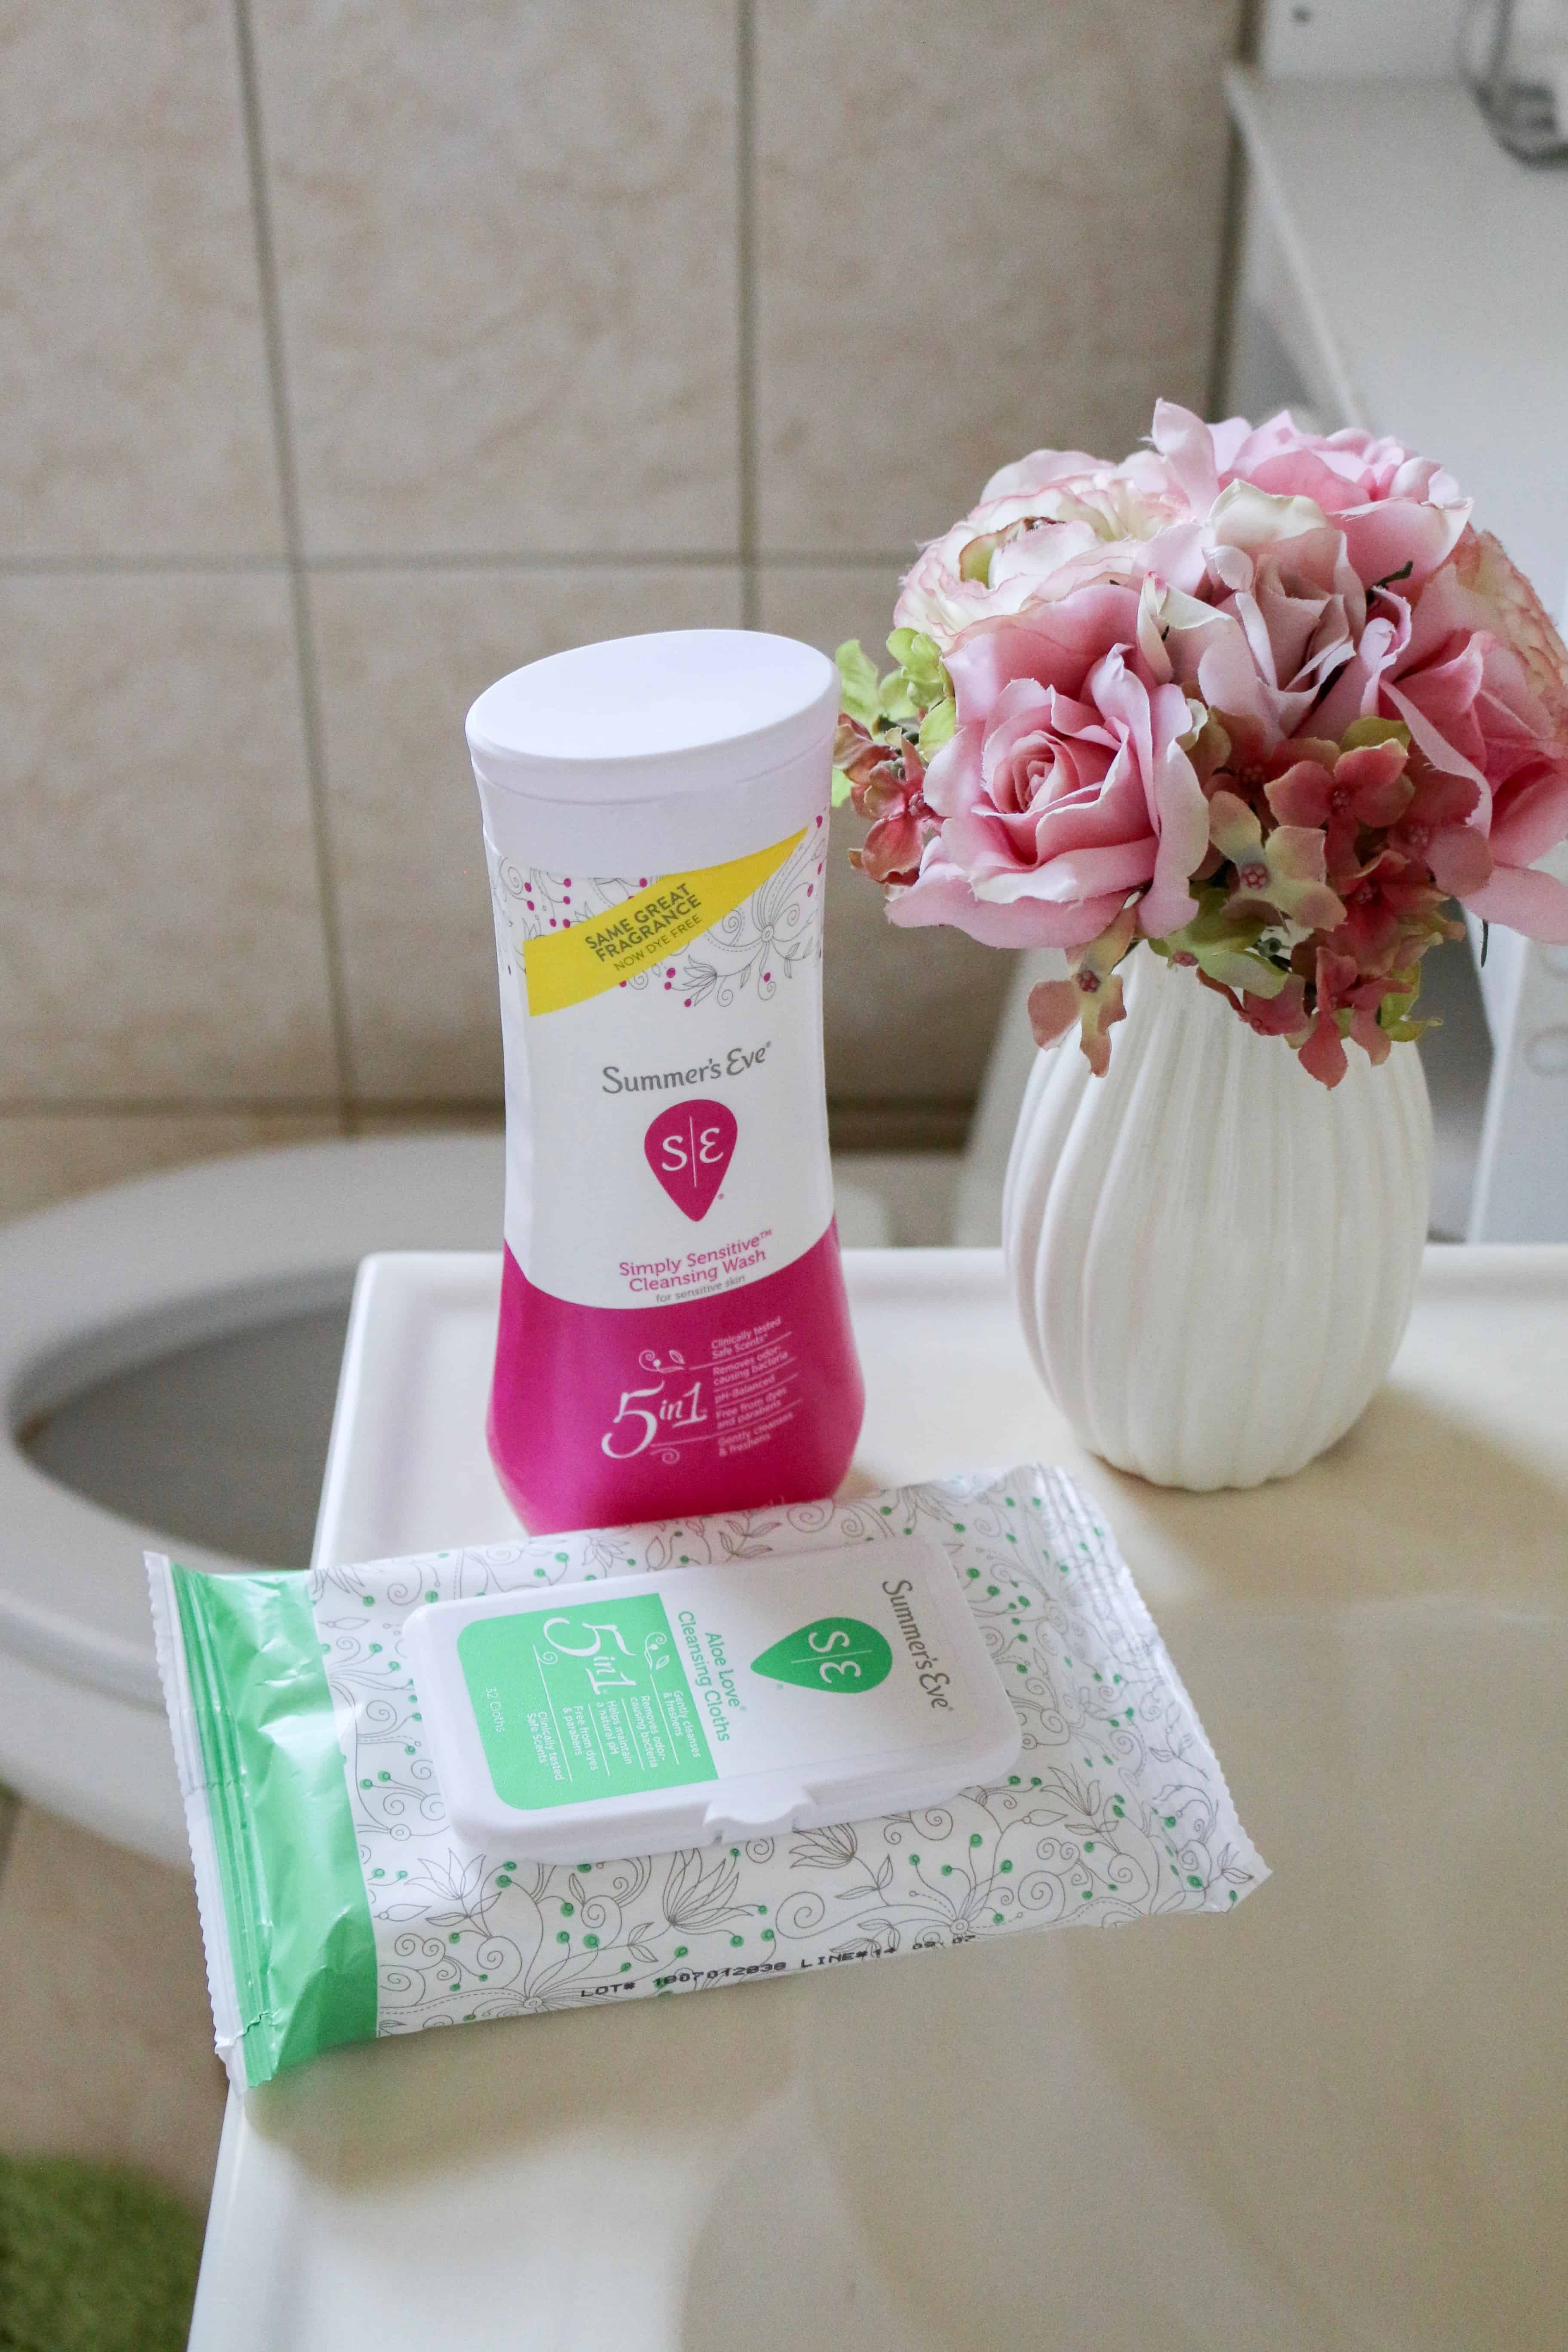 Summers Eve Products 6 - A New Season , a Fresh Start with Summer's Eve® products